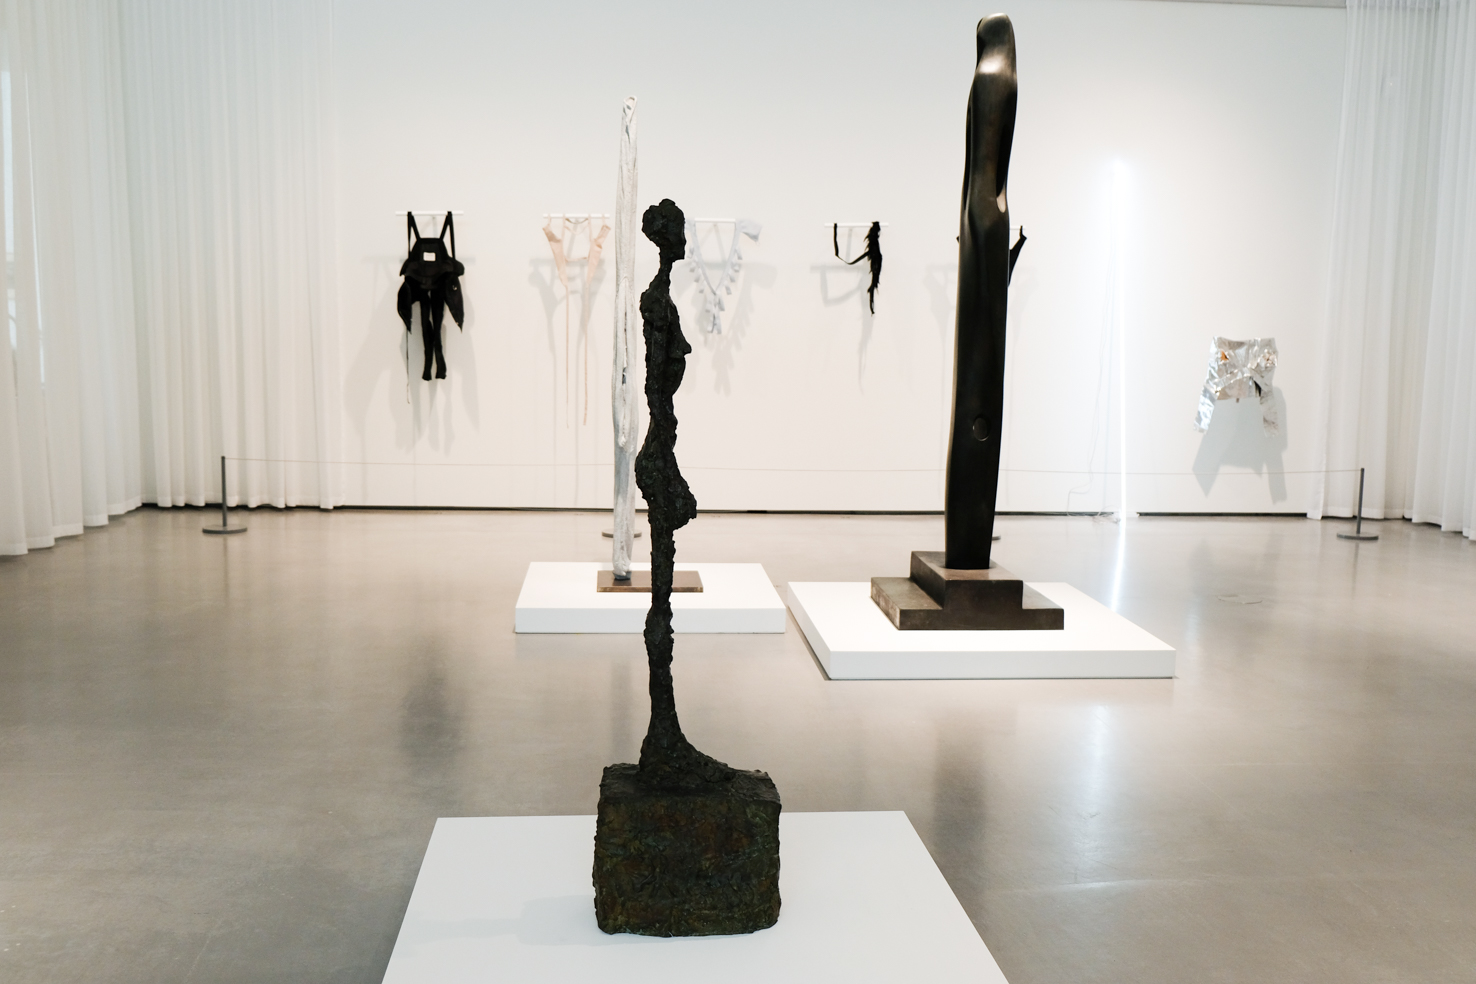 06 Alberto Giacometti Standing Woman 1958 1959 Barbara Hepworth Single Form 1969 Helmut Lang Harness Serie Cerith Wyn Evans Leaning Horizon White Neon 2015